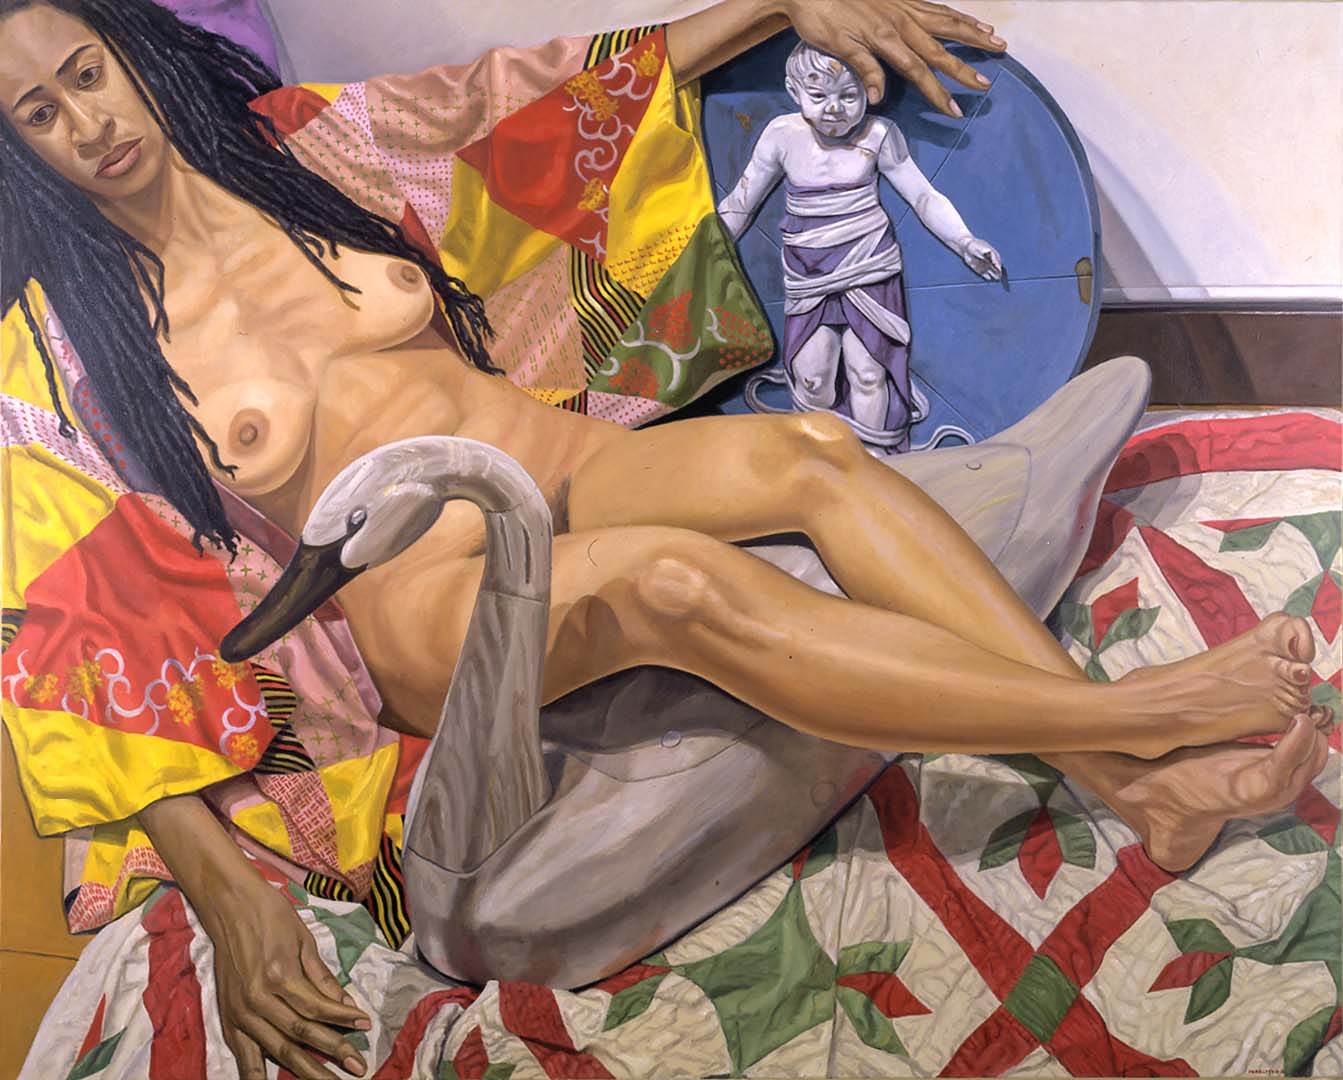 2001 Model with Dreadlocks and Kimono with Swan and Renaissance Bambino Oil on Canvas 48 x 60